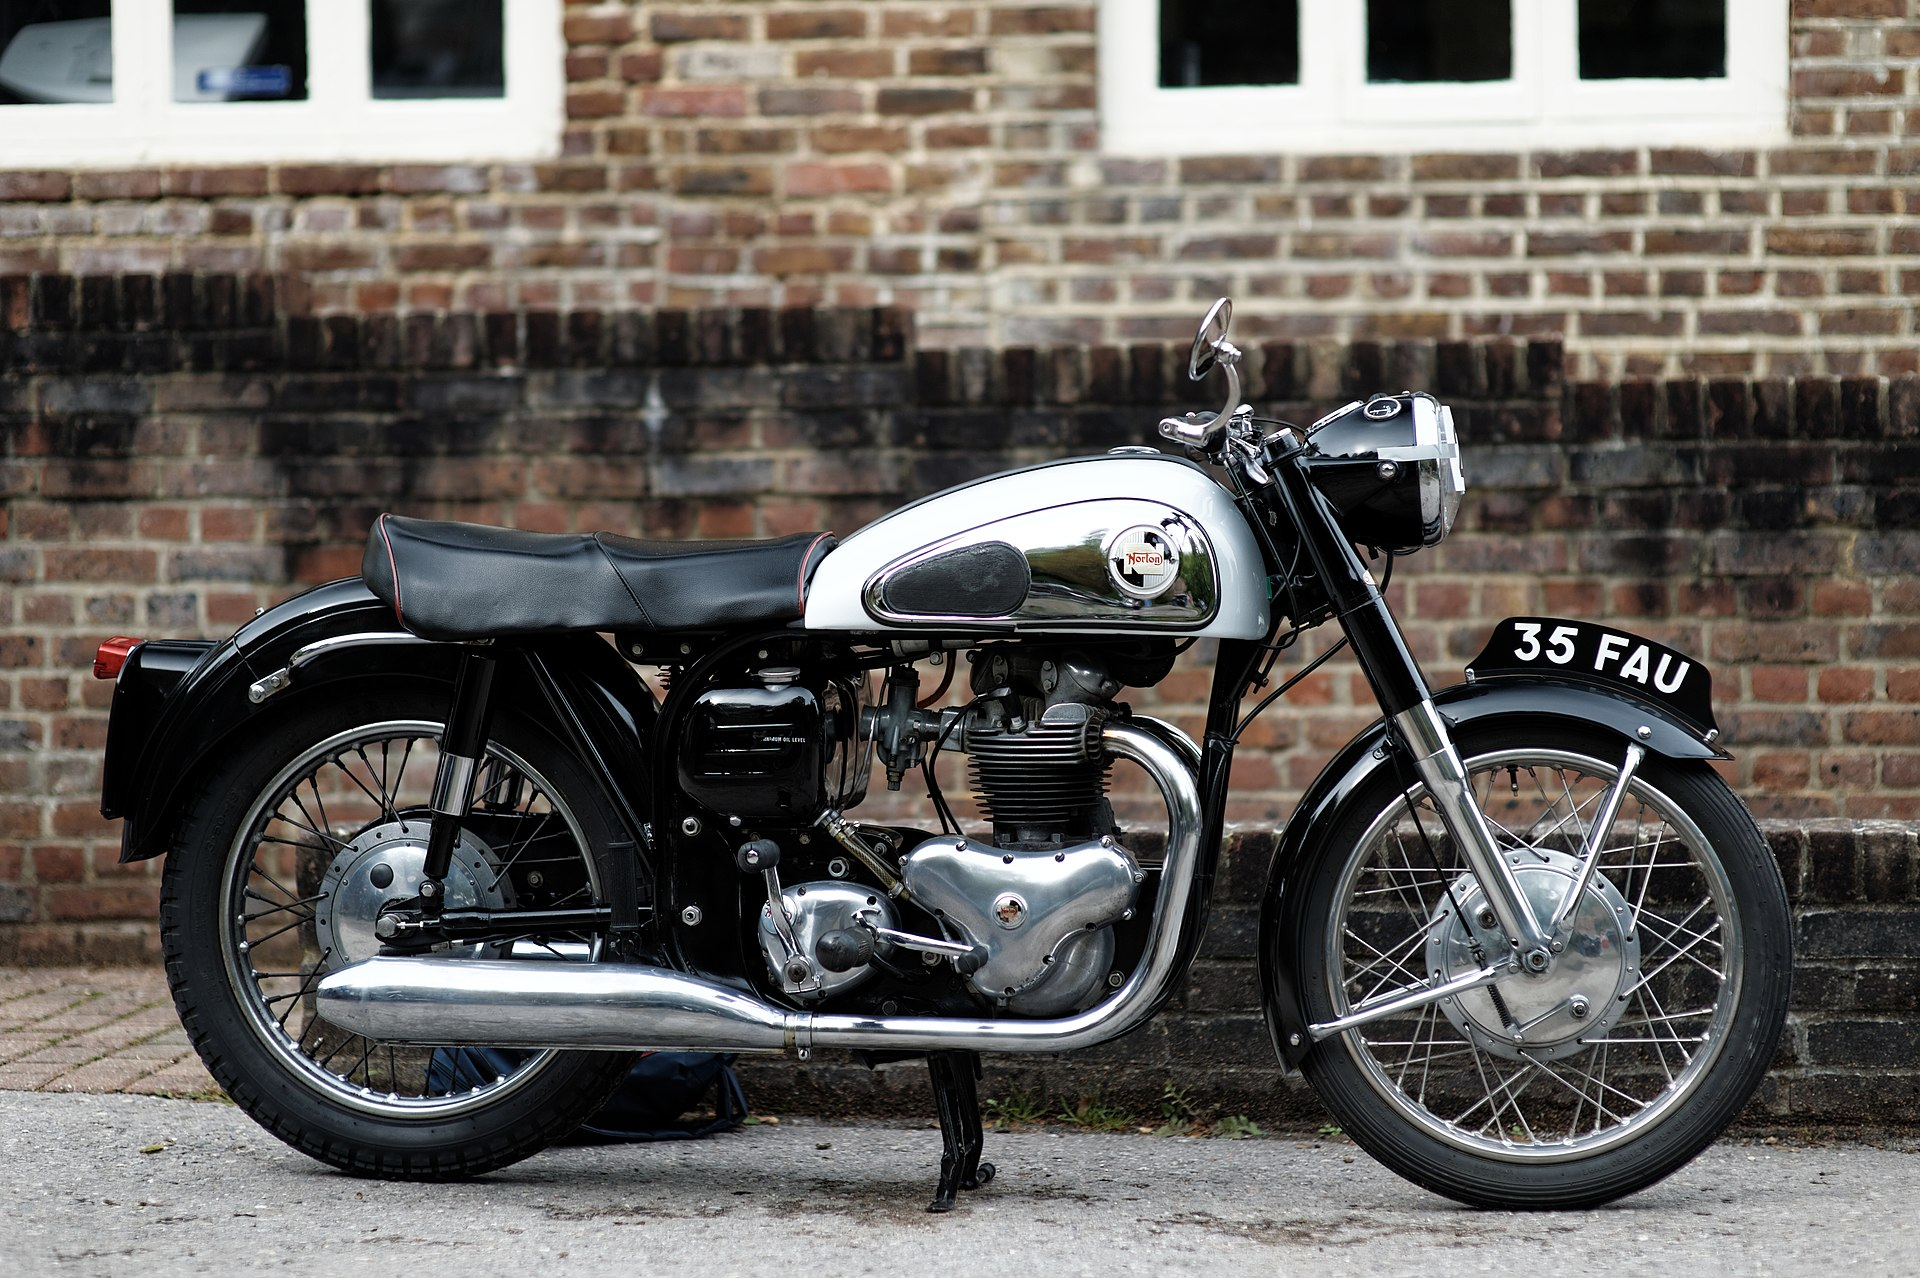 motorcycle norton wiki wikipedia motorcycles bike classic motorbike motor moto motorbikes bikes 1960 engine cycles